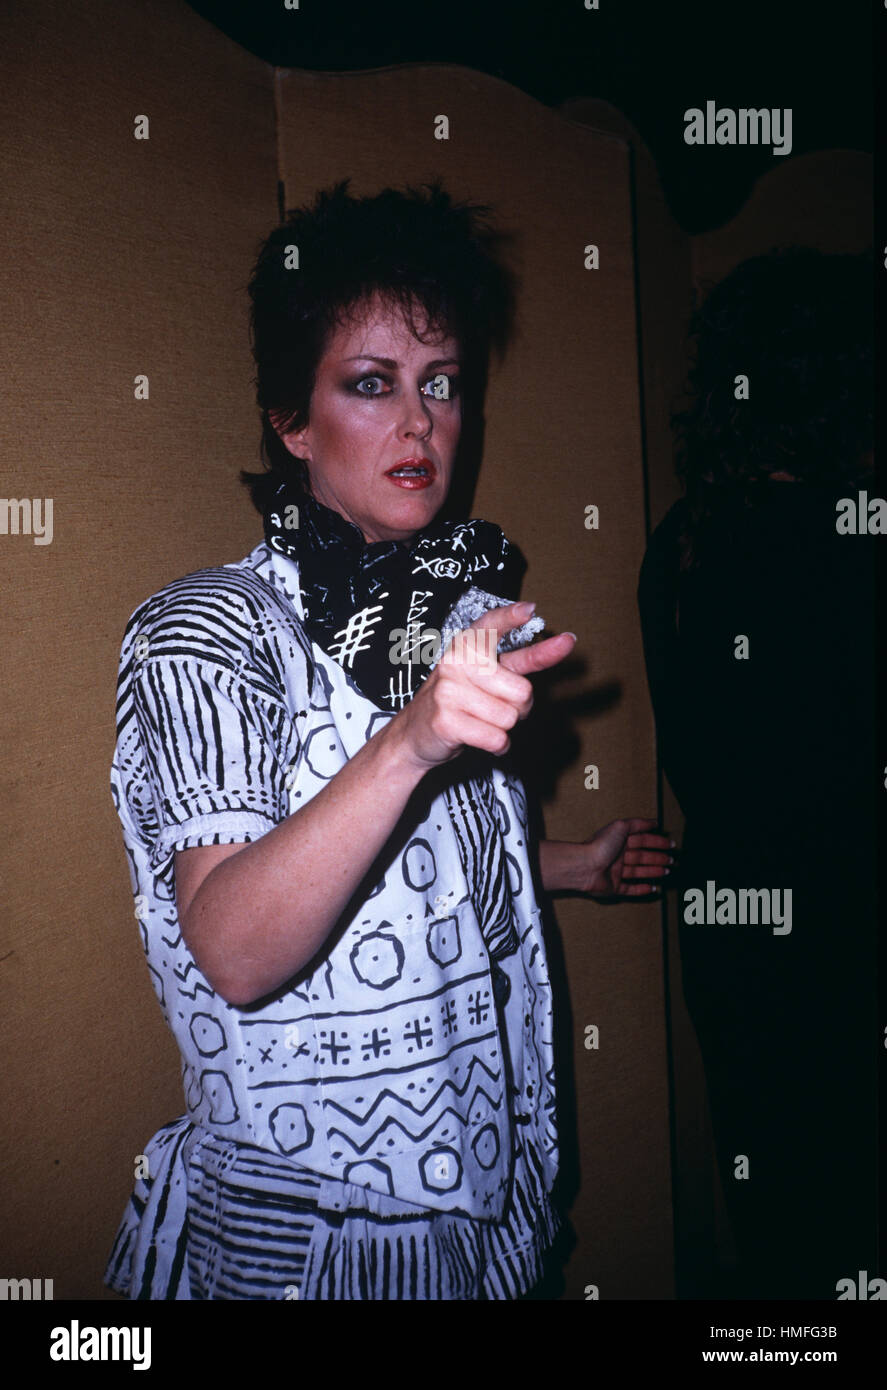 American singer and songwriter Grace Slick - Stock Image